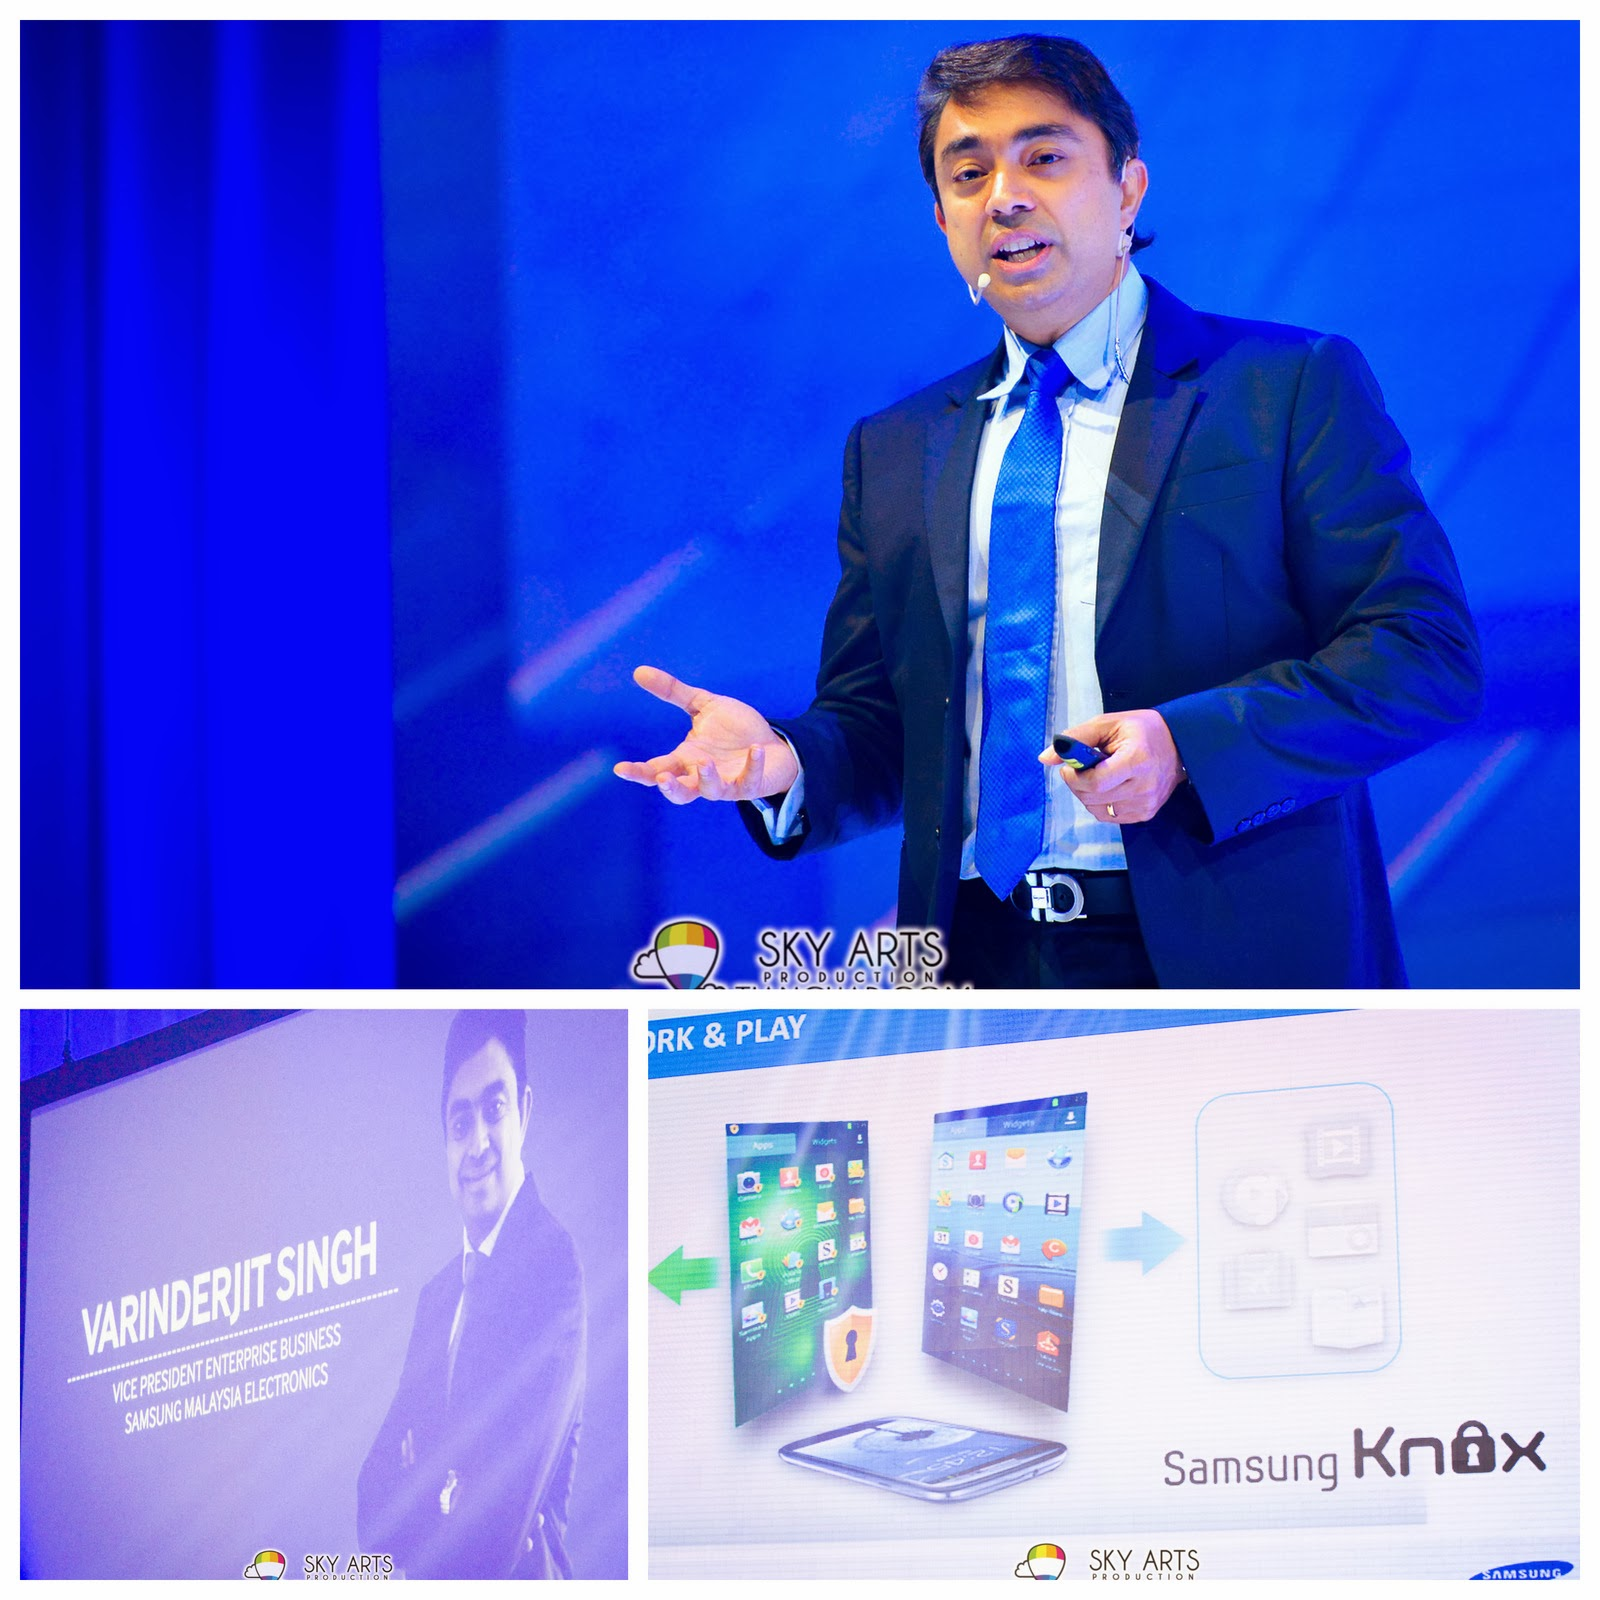 Samsung Galaxy Note 3 Gear Launch In Malaysia Rm2399 Rm999 Kopi Bos By Ila Arifin Amr Knox Security Protection Against Malware And Phishing Attacks As Well Hacking Attempts On Your Smartphone